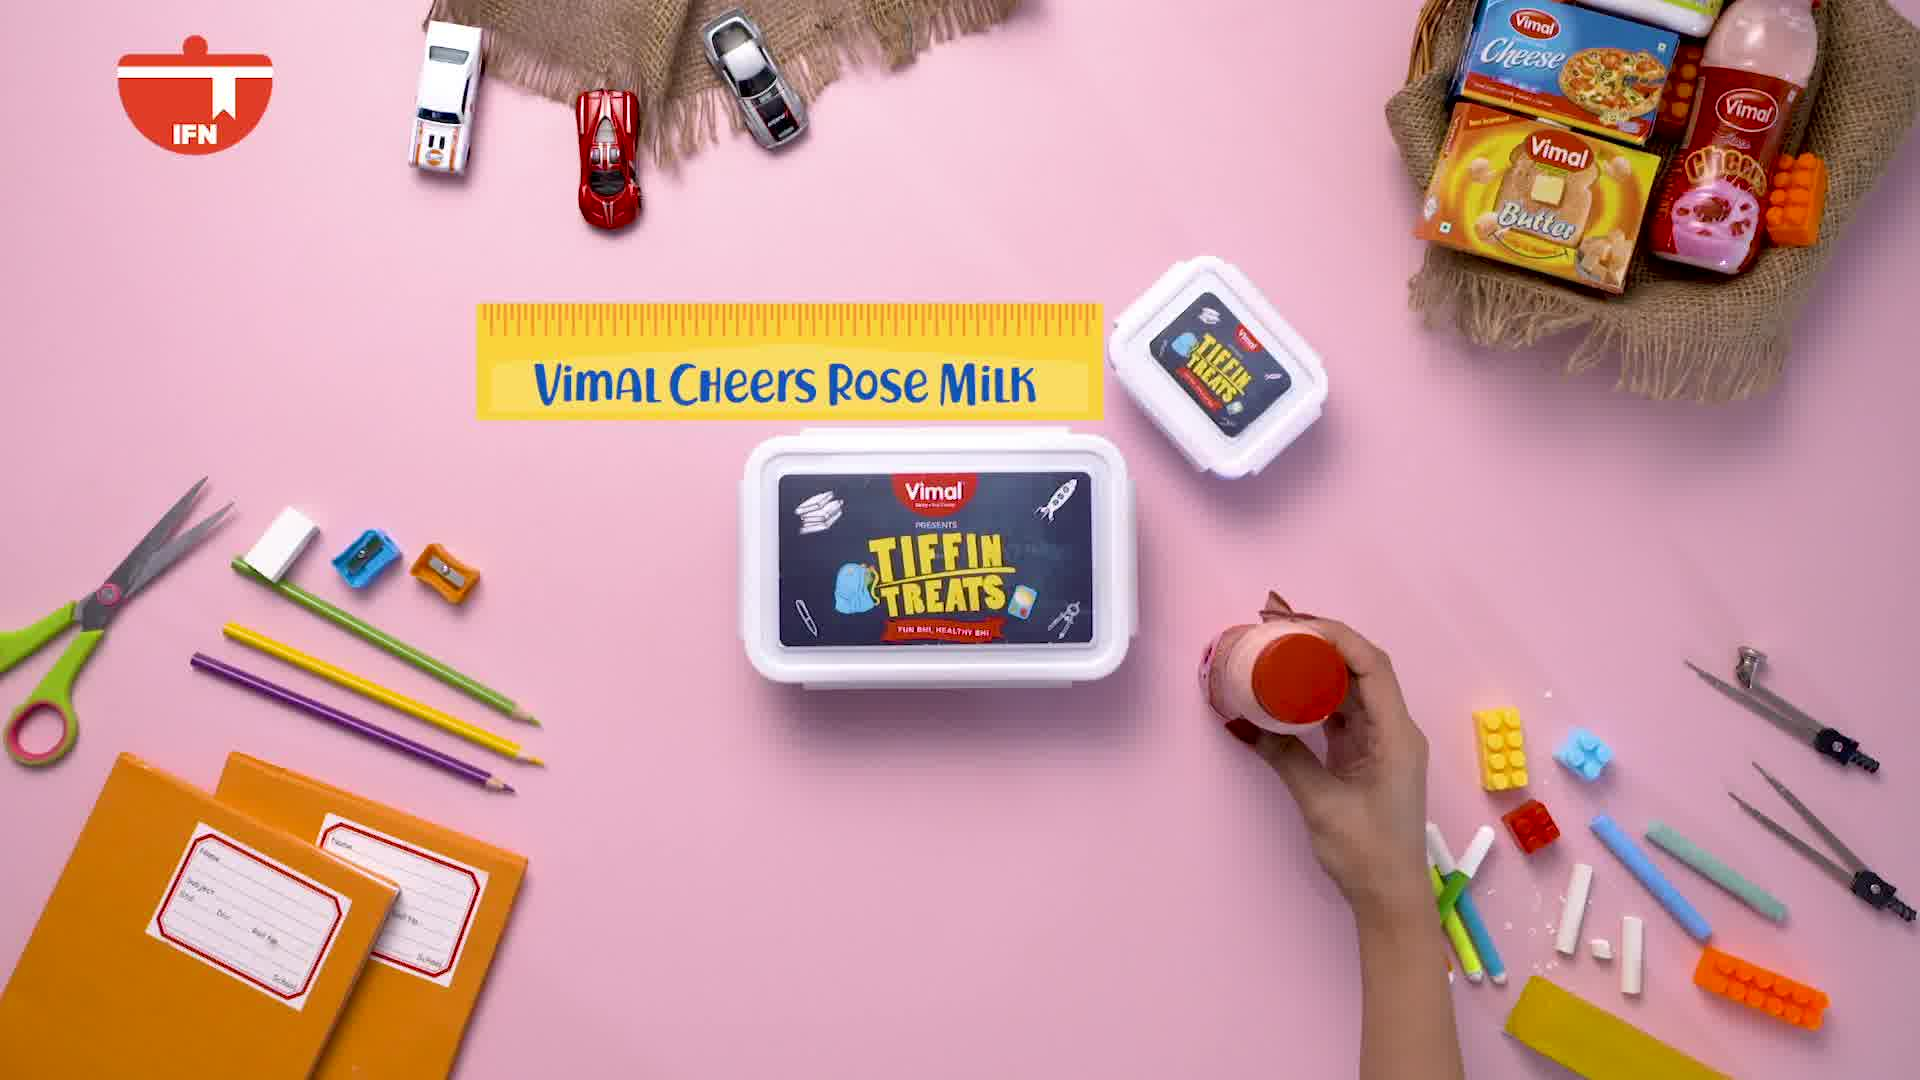 ::Tiffin Treats, Fun bhi, Healthy bhi::  See how beautifully you can do and add wonders to your little one's tiffin by turning the left-over roti into a yummy and delicious Roti Pizza.   P.S. Don't forget to add Vimal cheers rose milk to your little one's tiffin box!   #TiffinTreats #Vimal #IceCream #VimalIceCream #Ahmedabad